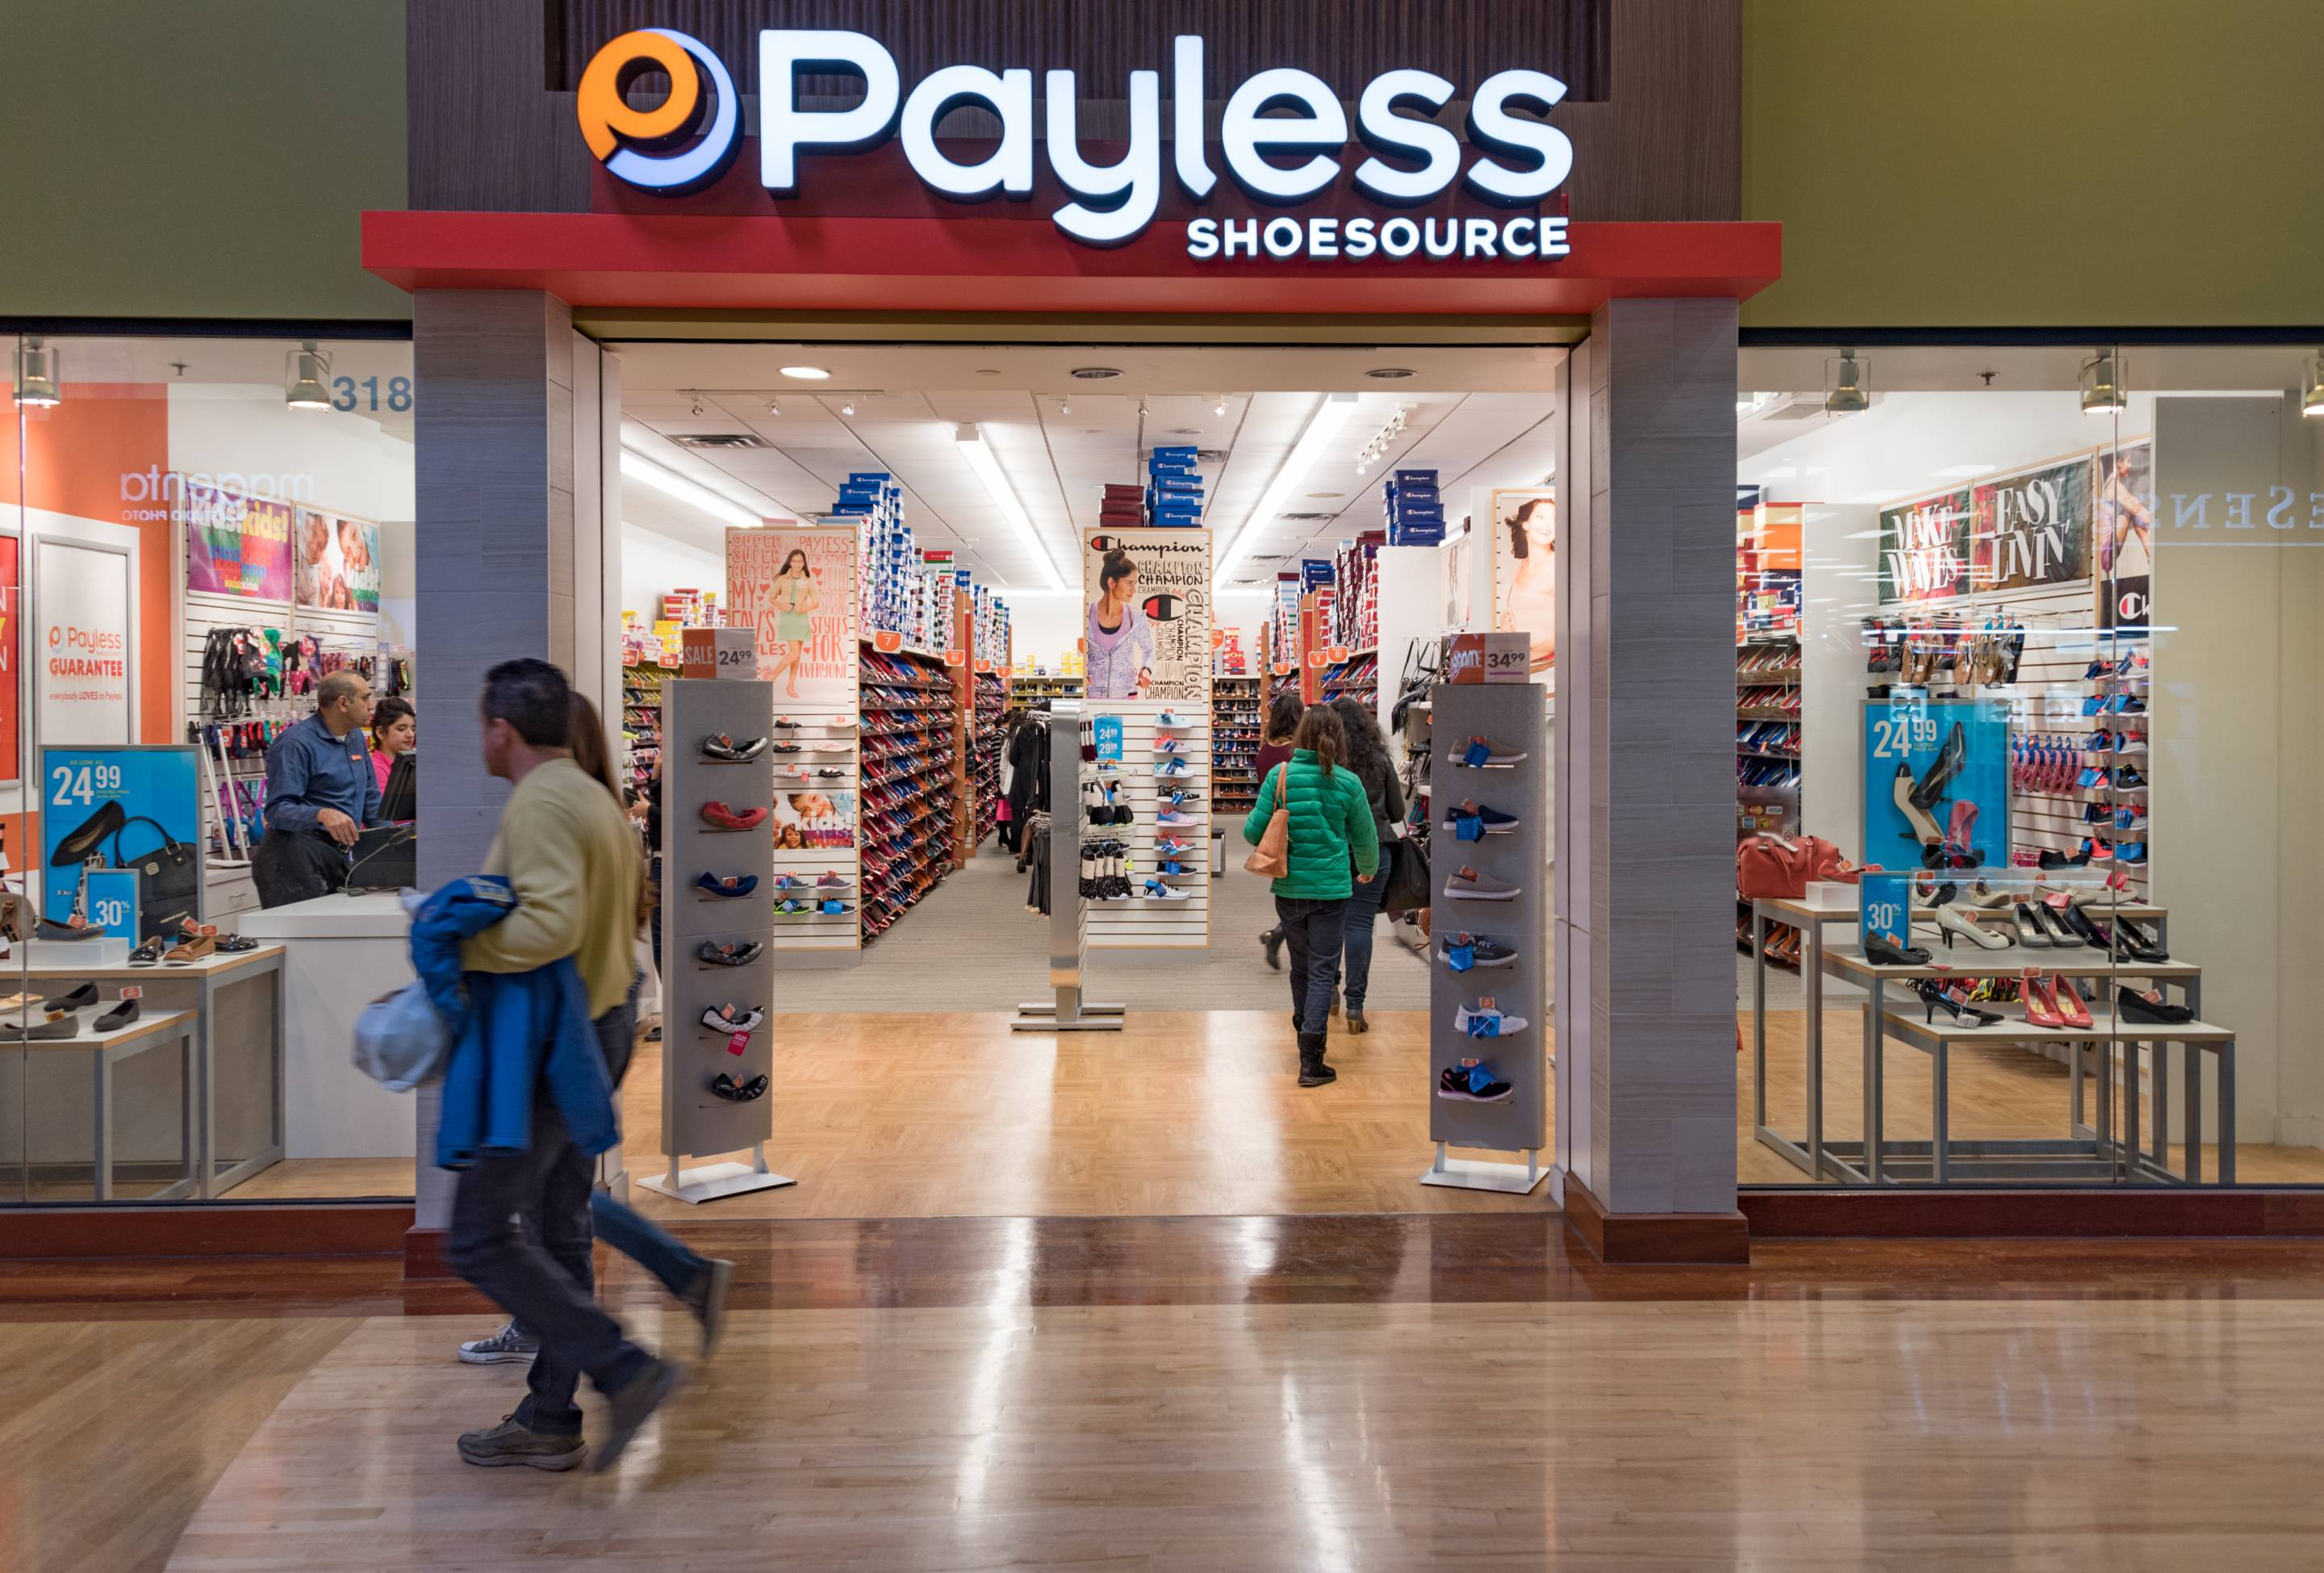 7a359c4d7 Payless Opened a Fake Luxury Store With $600 Shoes | Fortune